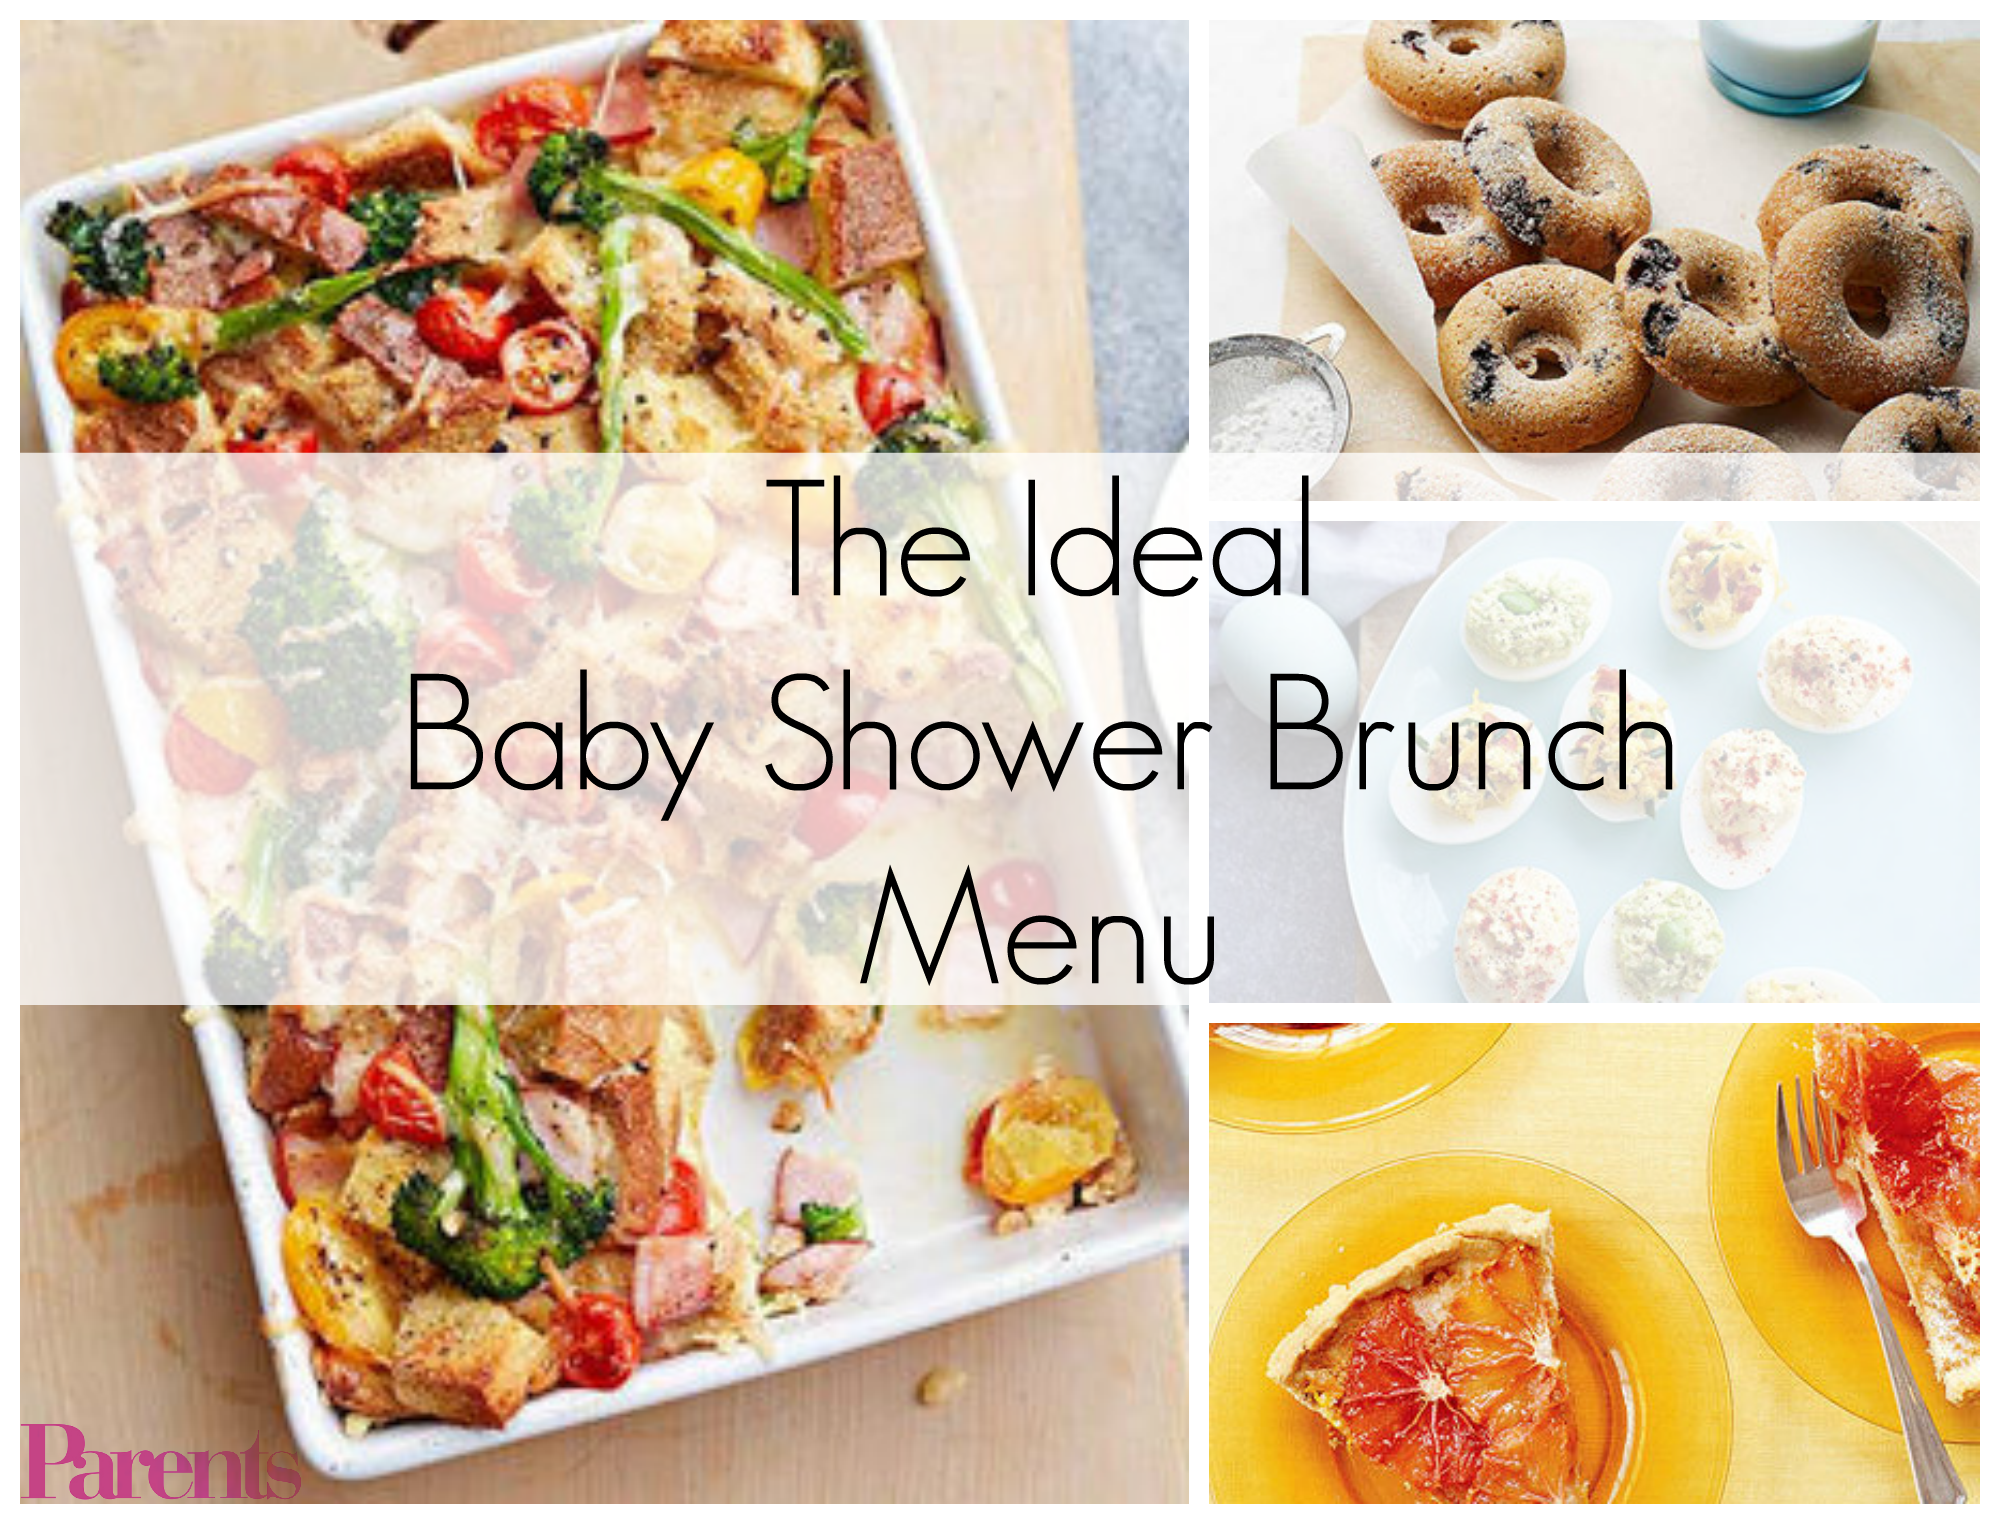 The Ideal Baby Shower Brunch Menu | Pinterest | Baby shower brunch ...